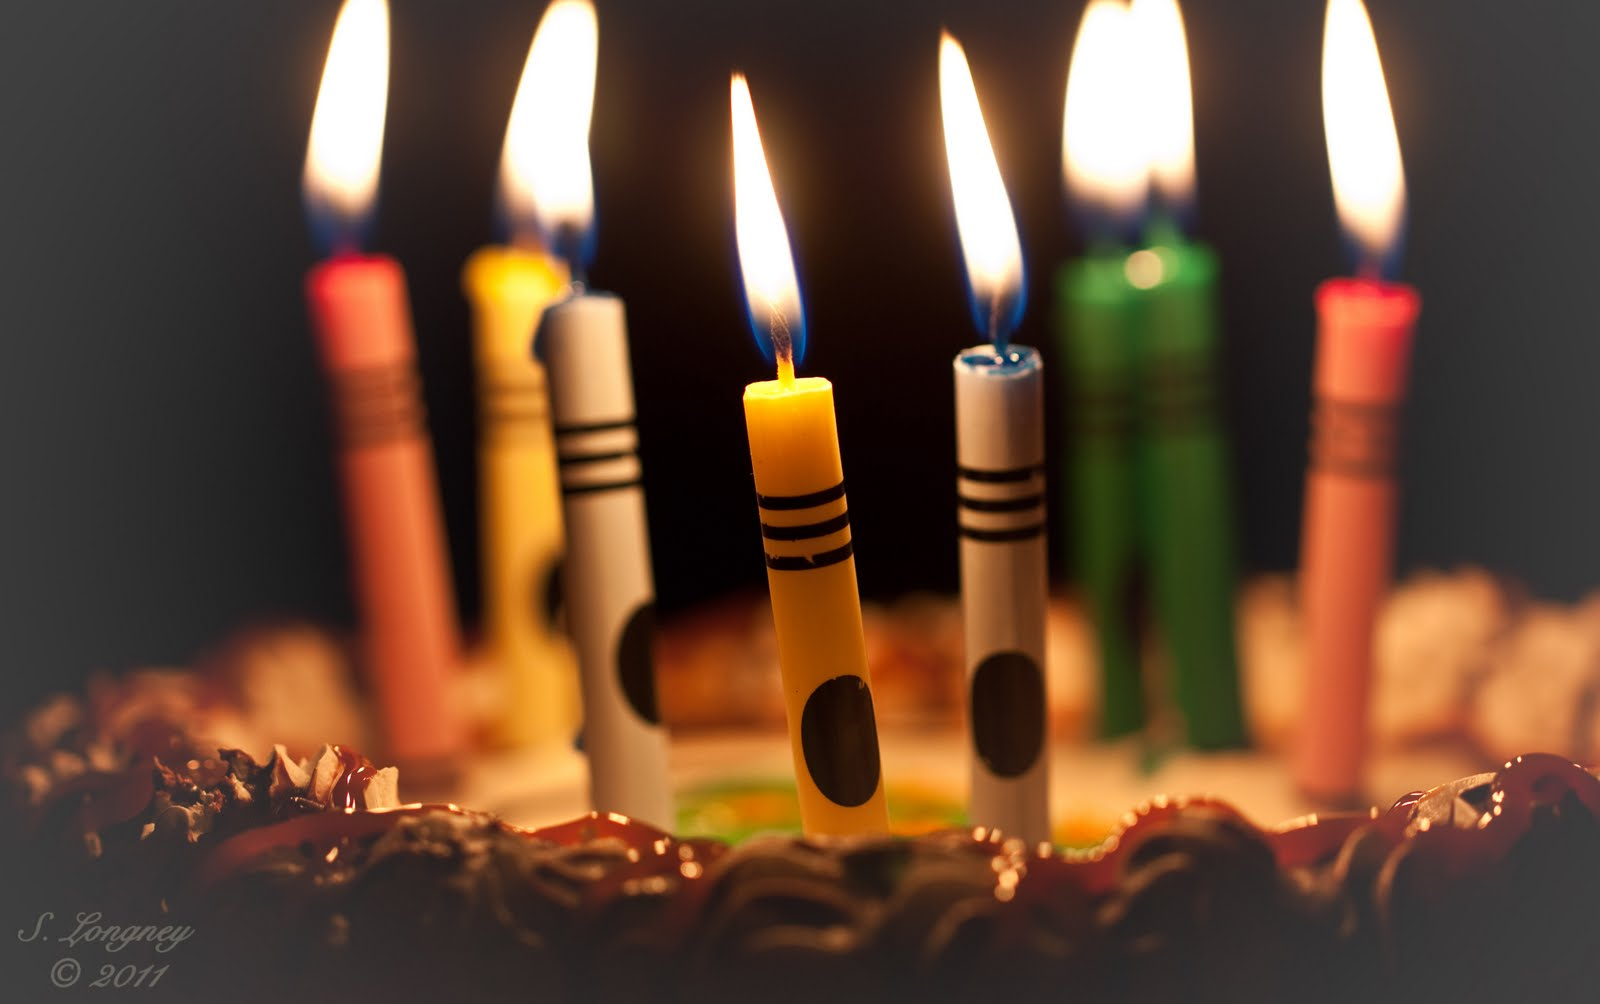 Significance Of  Candles On Birthday Cake